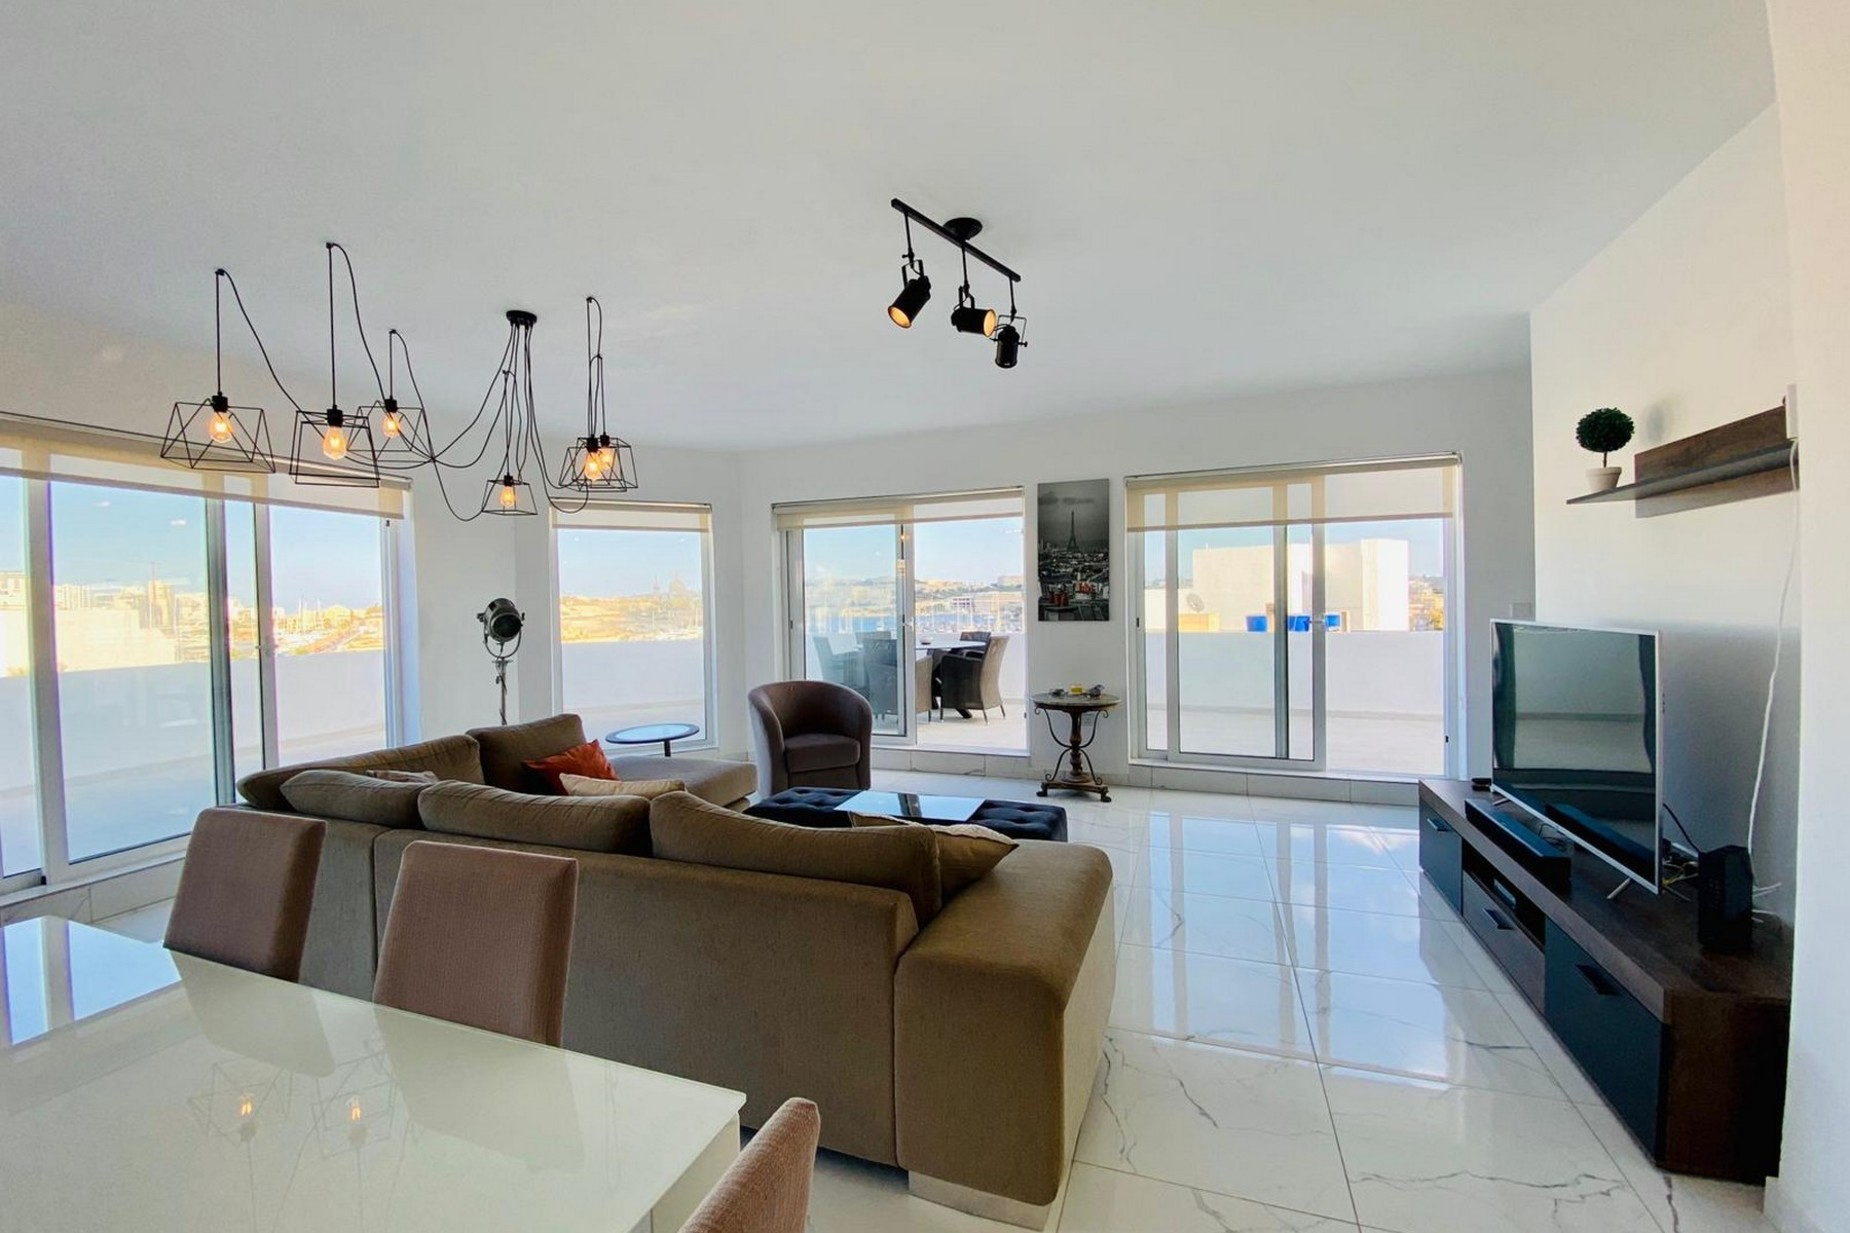 3 bed Penthouse For Sale in Gzira, Gzira - thumb 3